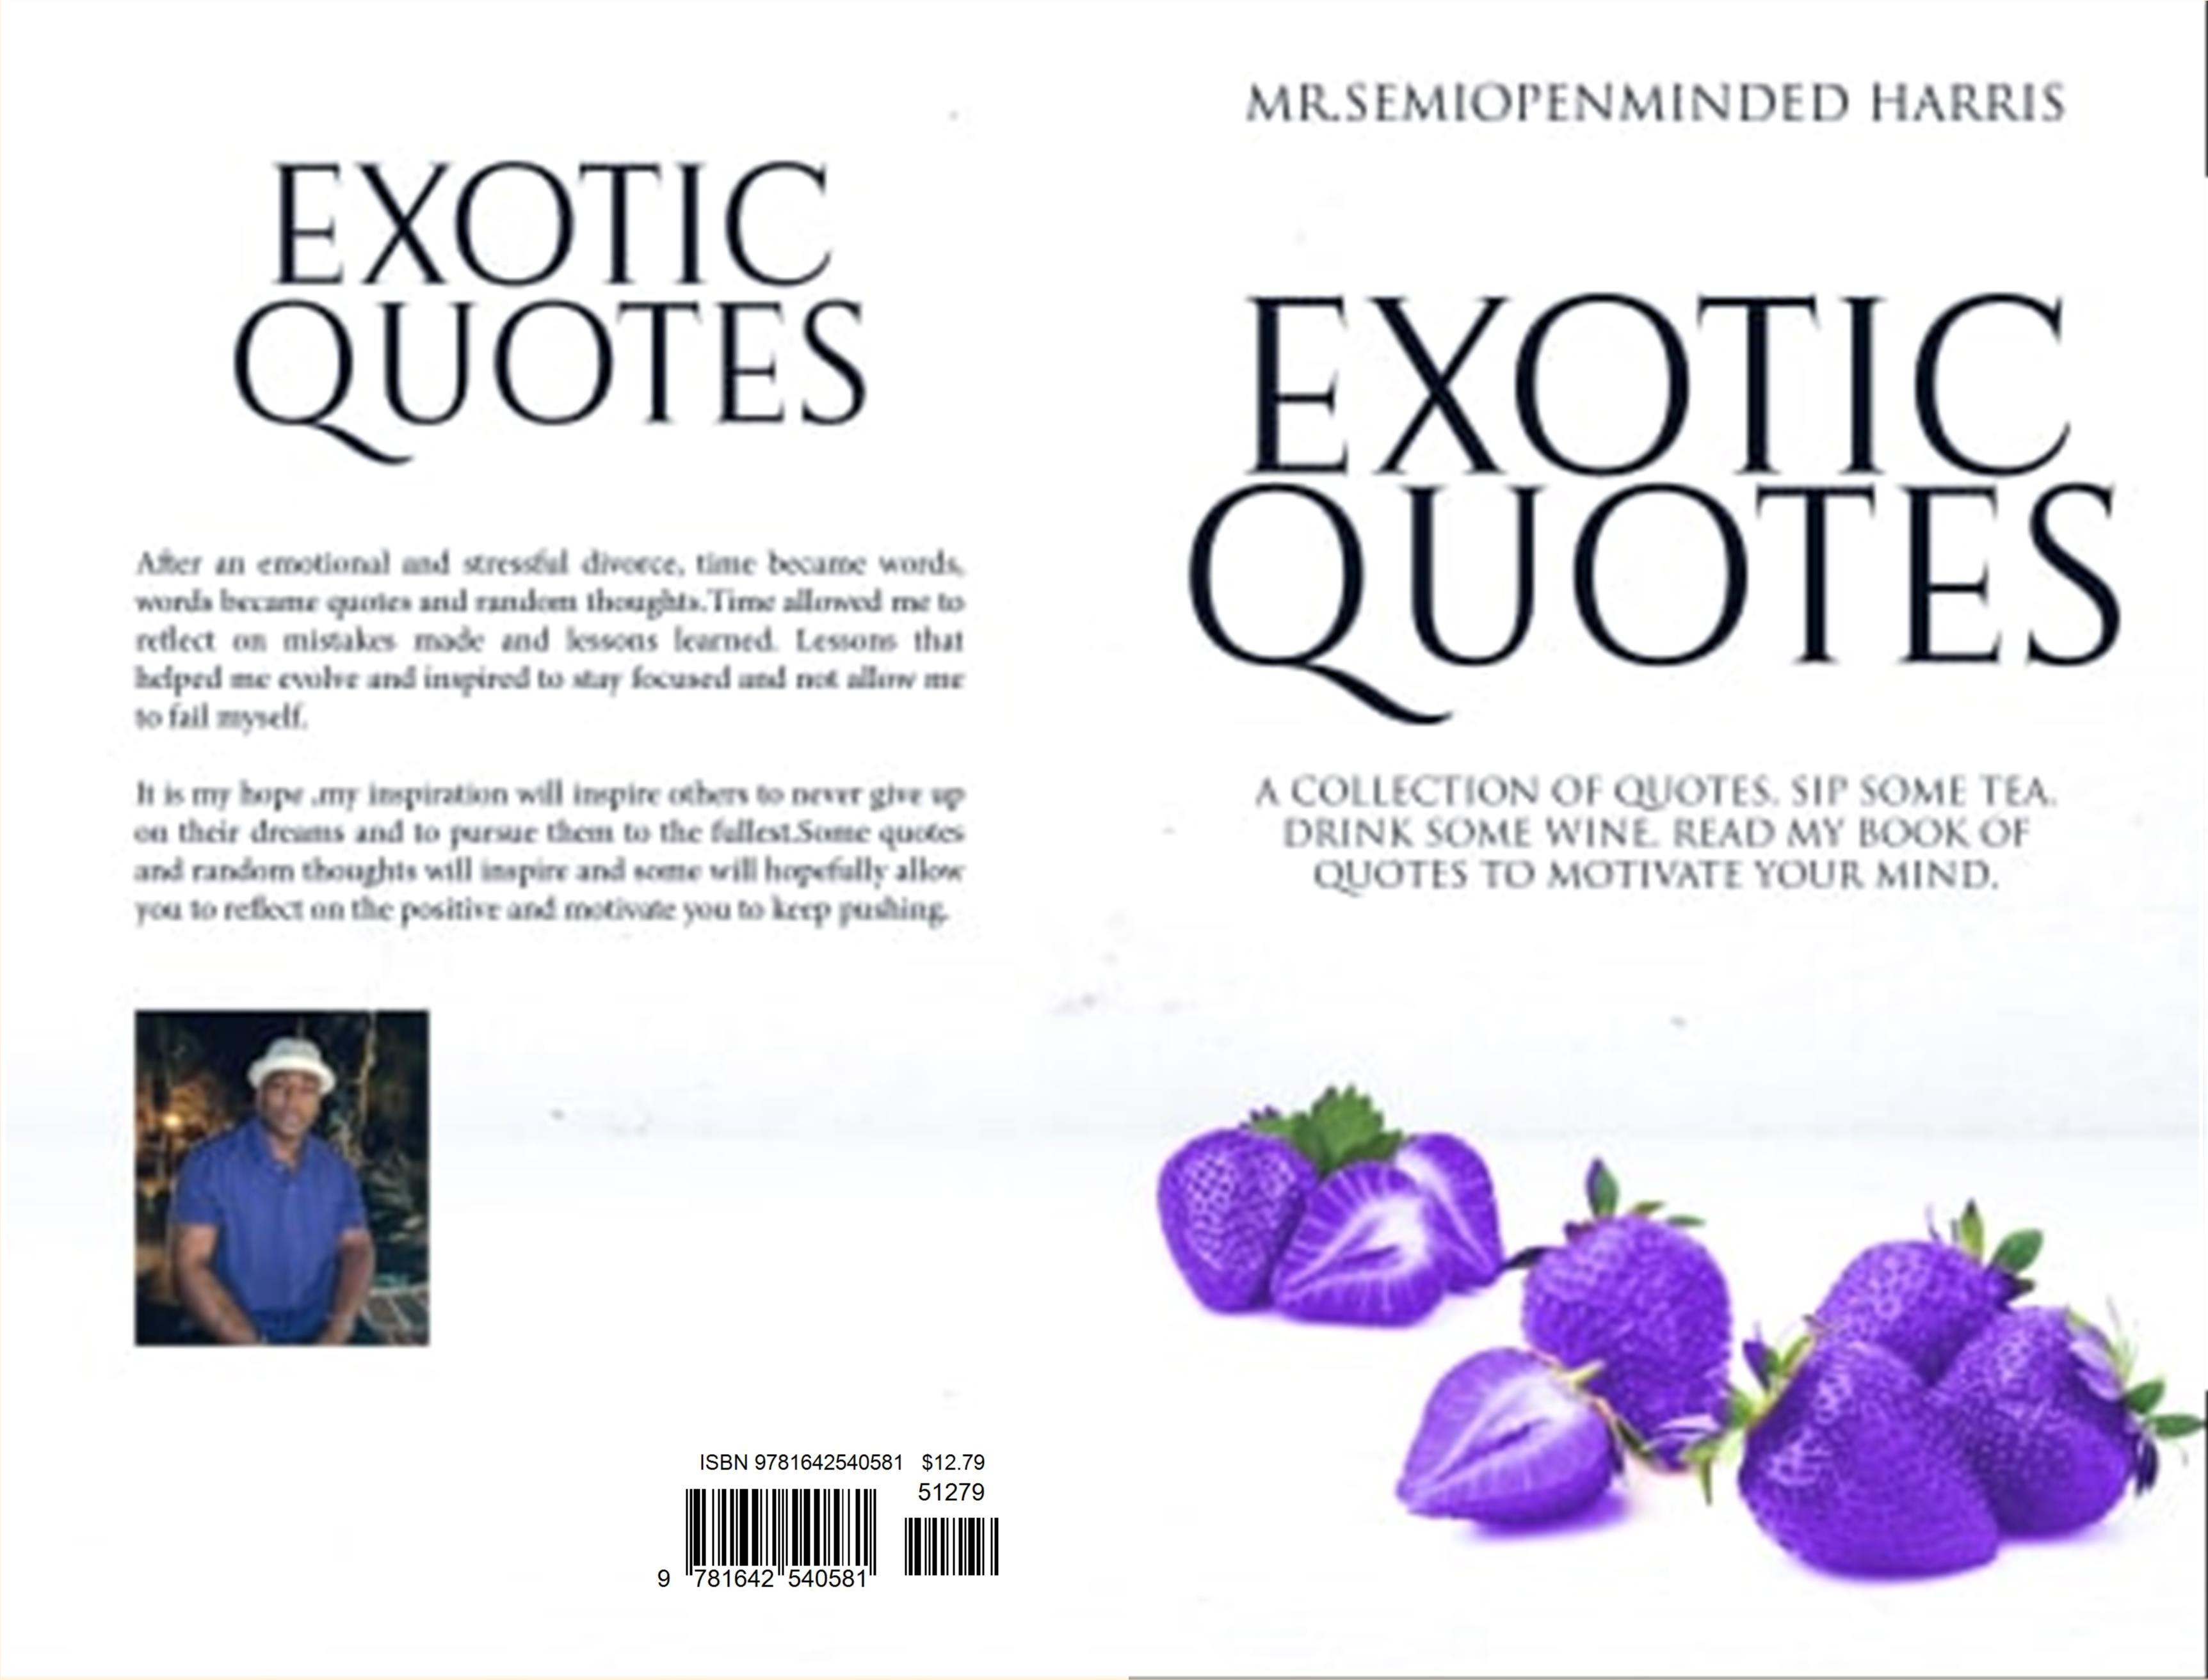 Exotic Quotes cover image